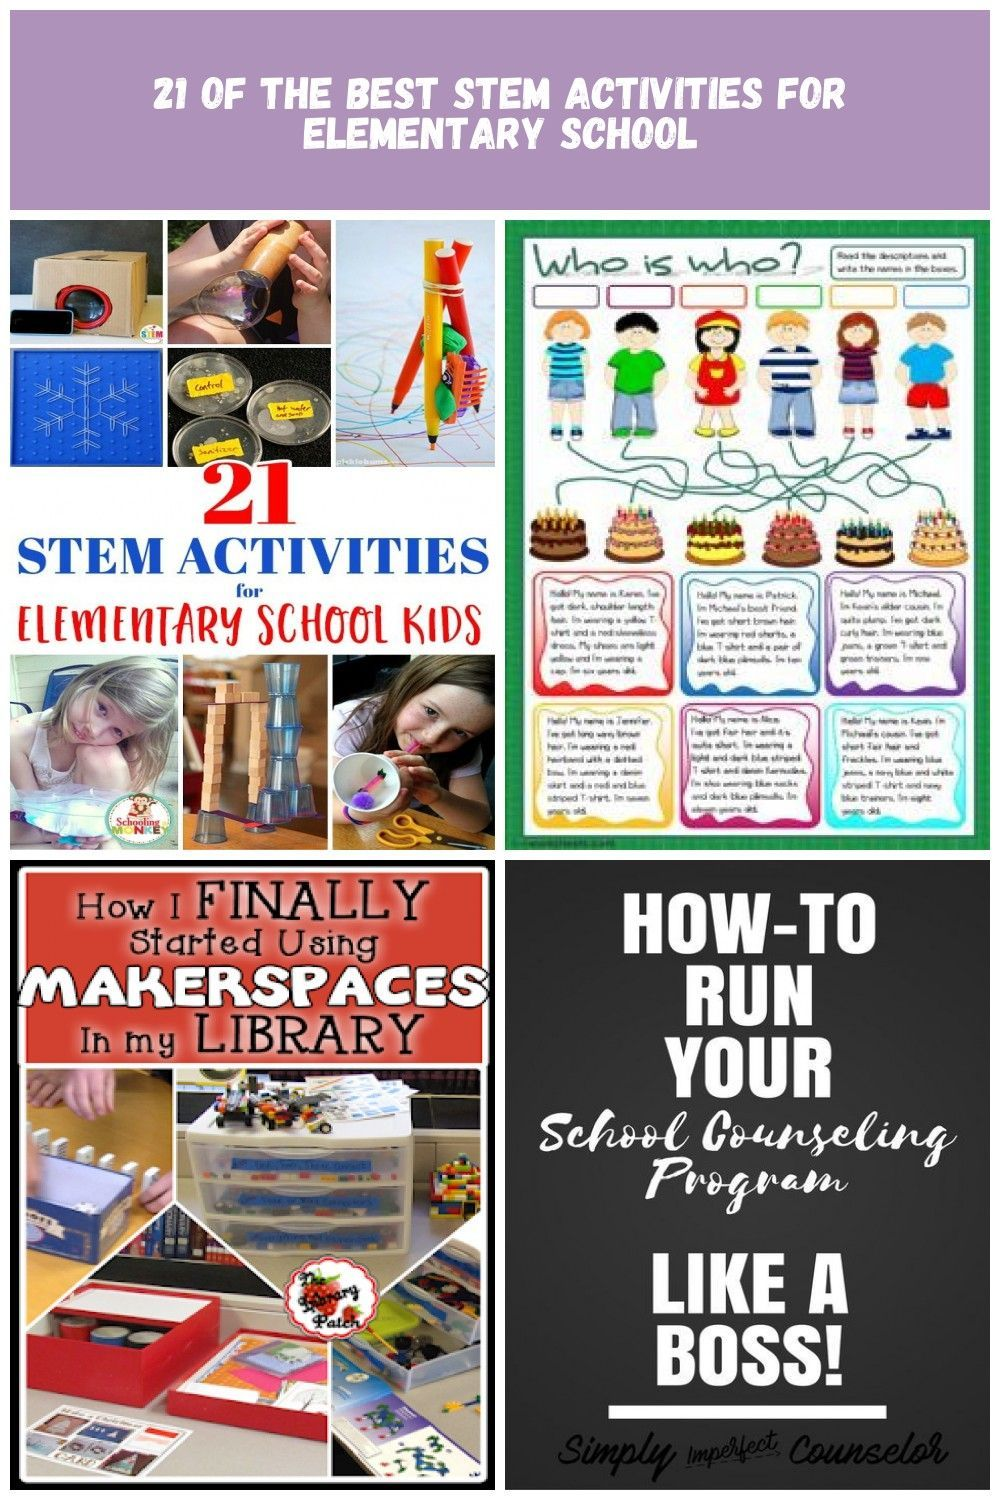 Teaching elementary science? This collection offers the best STEM activities for elementary aged kids that are hands on, educational, and fun! elementary school 21 OF THE BEST STEM ACTIVITIES FOR ELEMENTARY SCHOOL #stemactivitieselementary Teaching elementary science? This collection offers the best STEM activities for elementary aged kids that are hands on, educational, and fun! elementary school 21 OF THE BEST STEM ACTIVITIES FOR ELEMENTARY SCHOOL #stemactivitieselementary